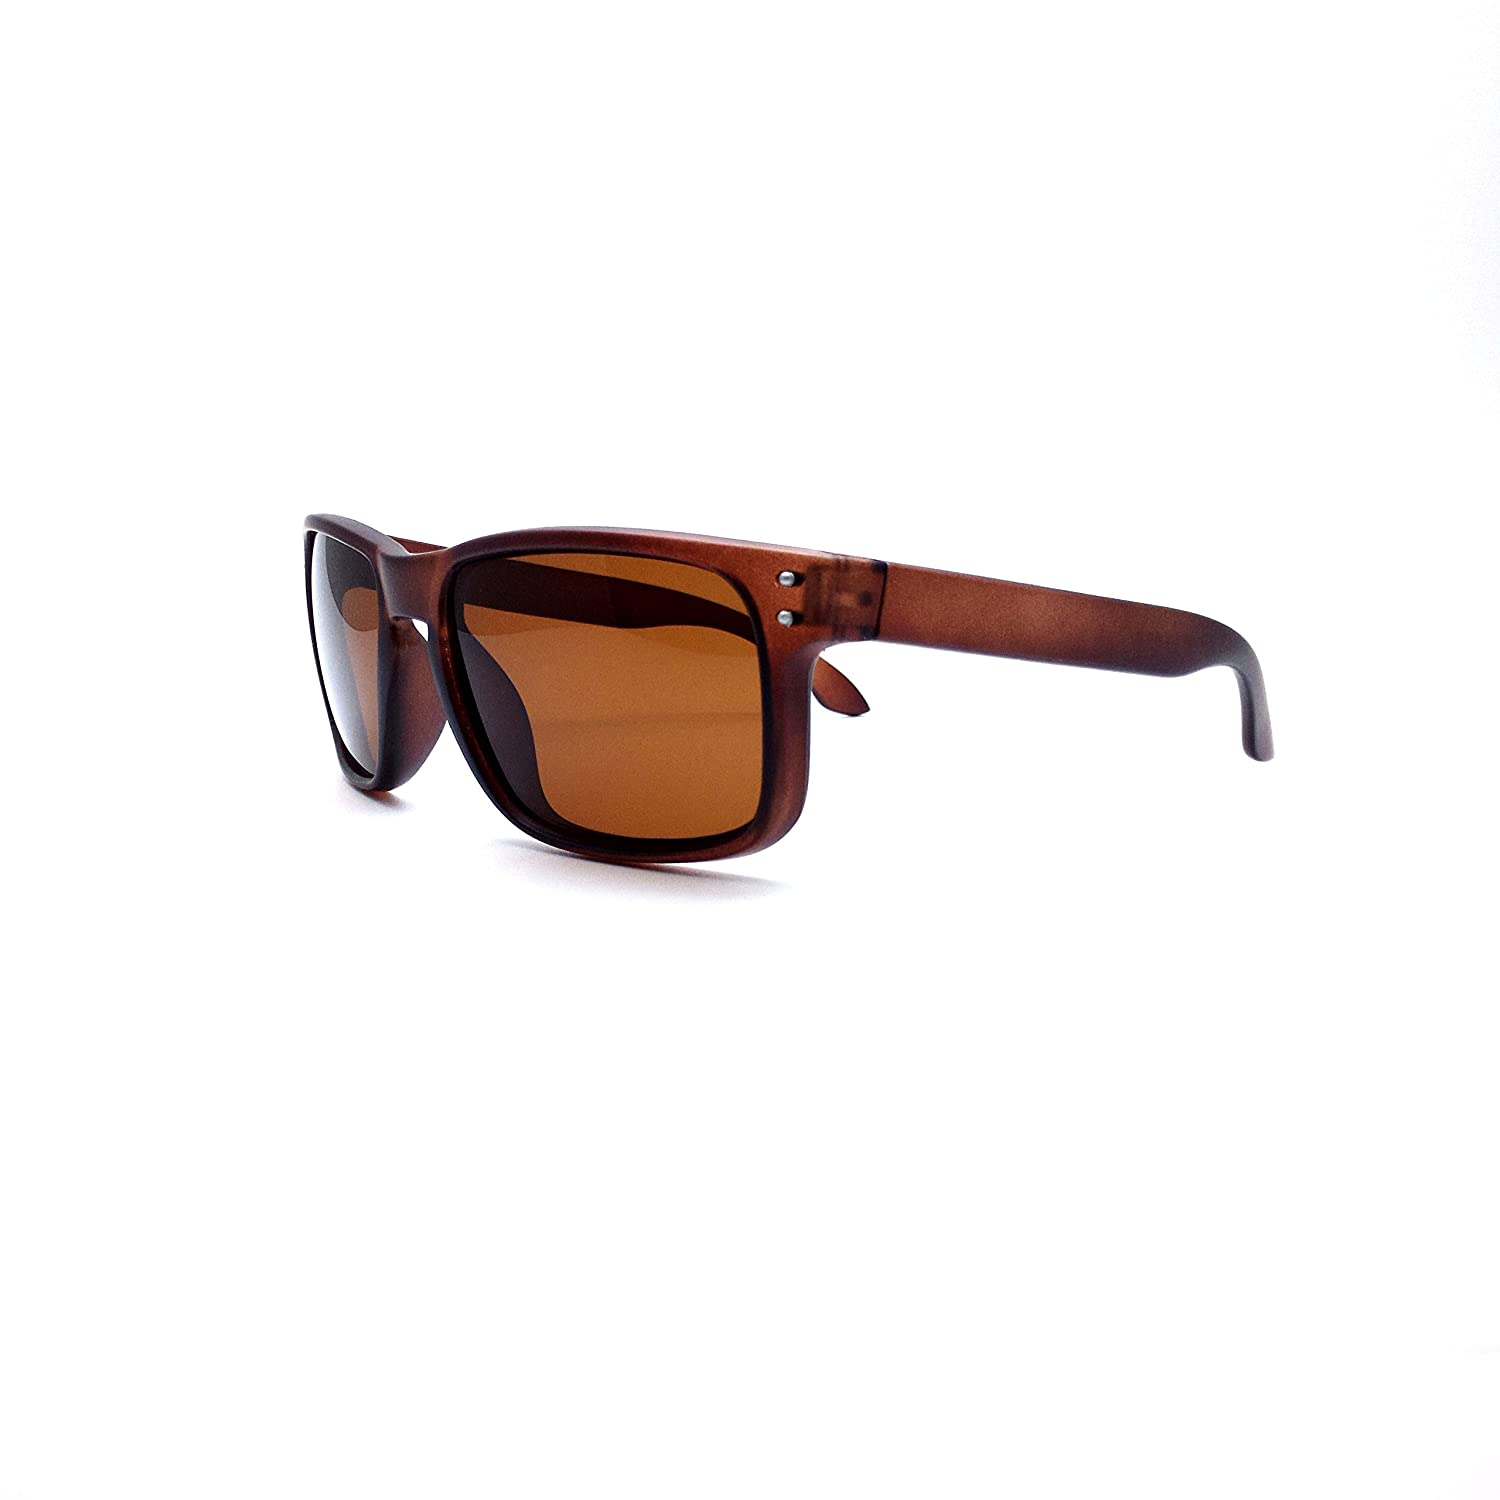 61ff6752f0ce7 Amazon.com  Polarized Lens Mens Square Rectangular Holbrook Style Sport  Sunglasses + Free Case  Clothing